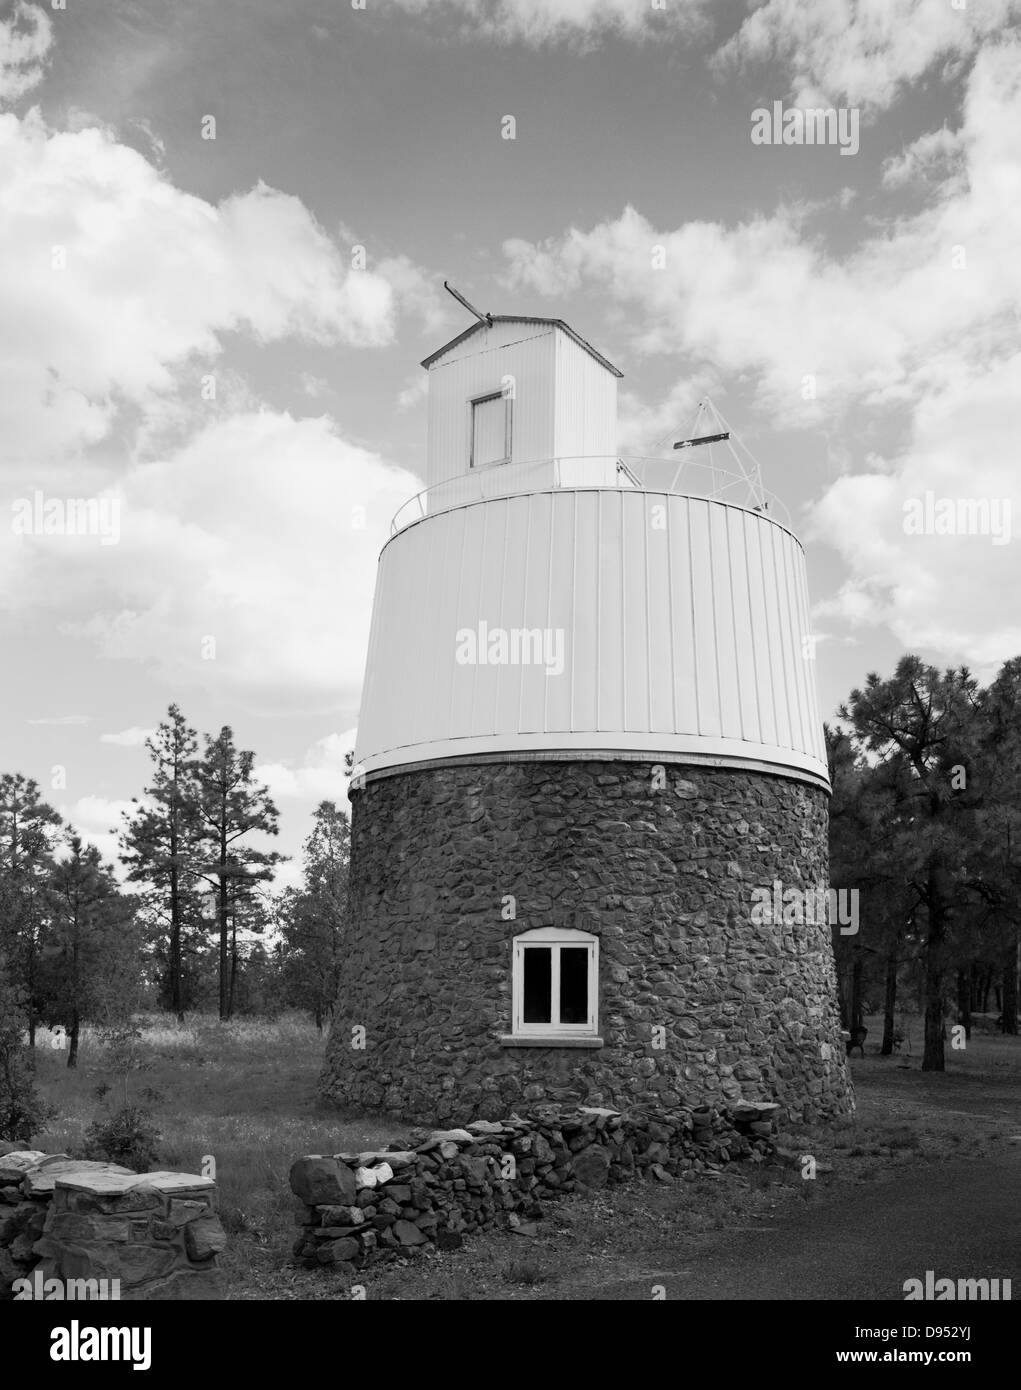 The Pluto Dome at Lowell Observatory in Flagstaff, Arizona. The dwarf planet Pluto was discovered by Clyde Tombaugh - Stock Image